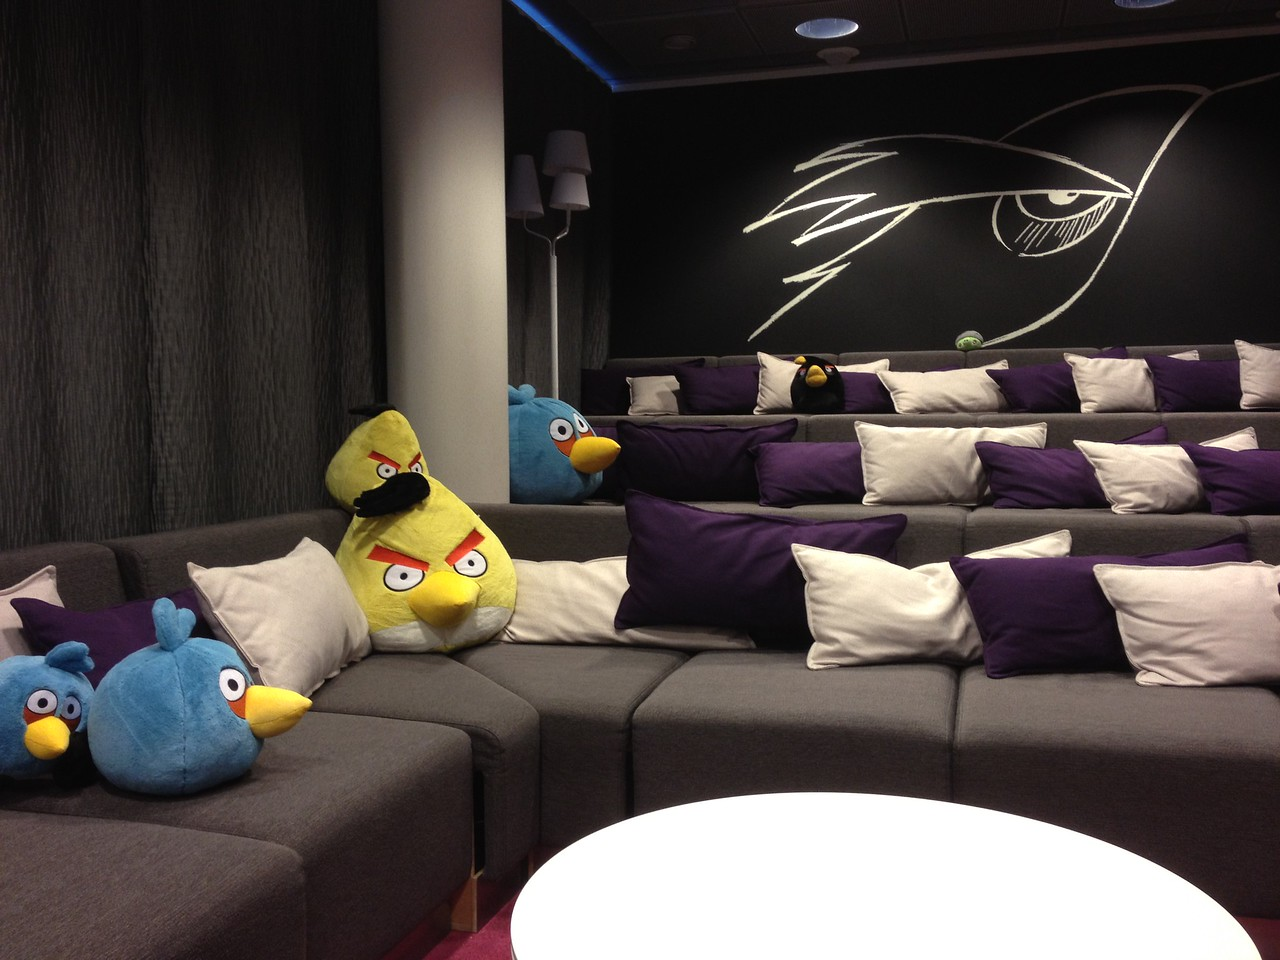 A theater inside Rovio's headquarters, home to staff movie days, among other gatherings.